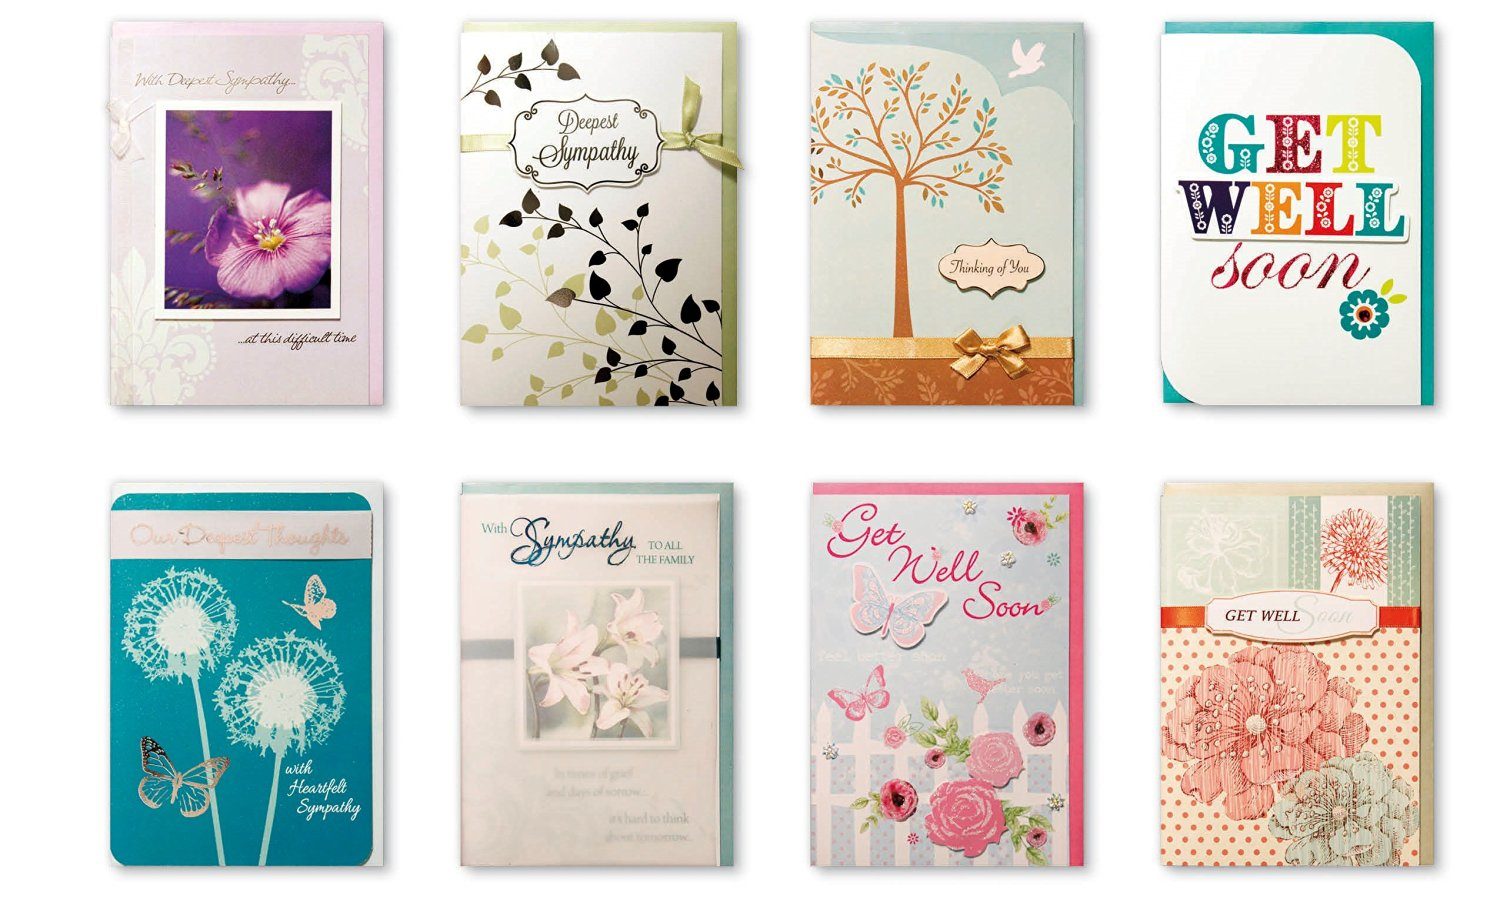 Cheap Hospital Cards Get Well Soon Find Hospital Cards Get Well